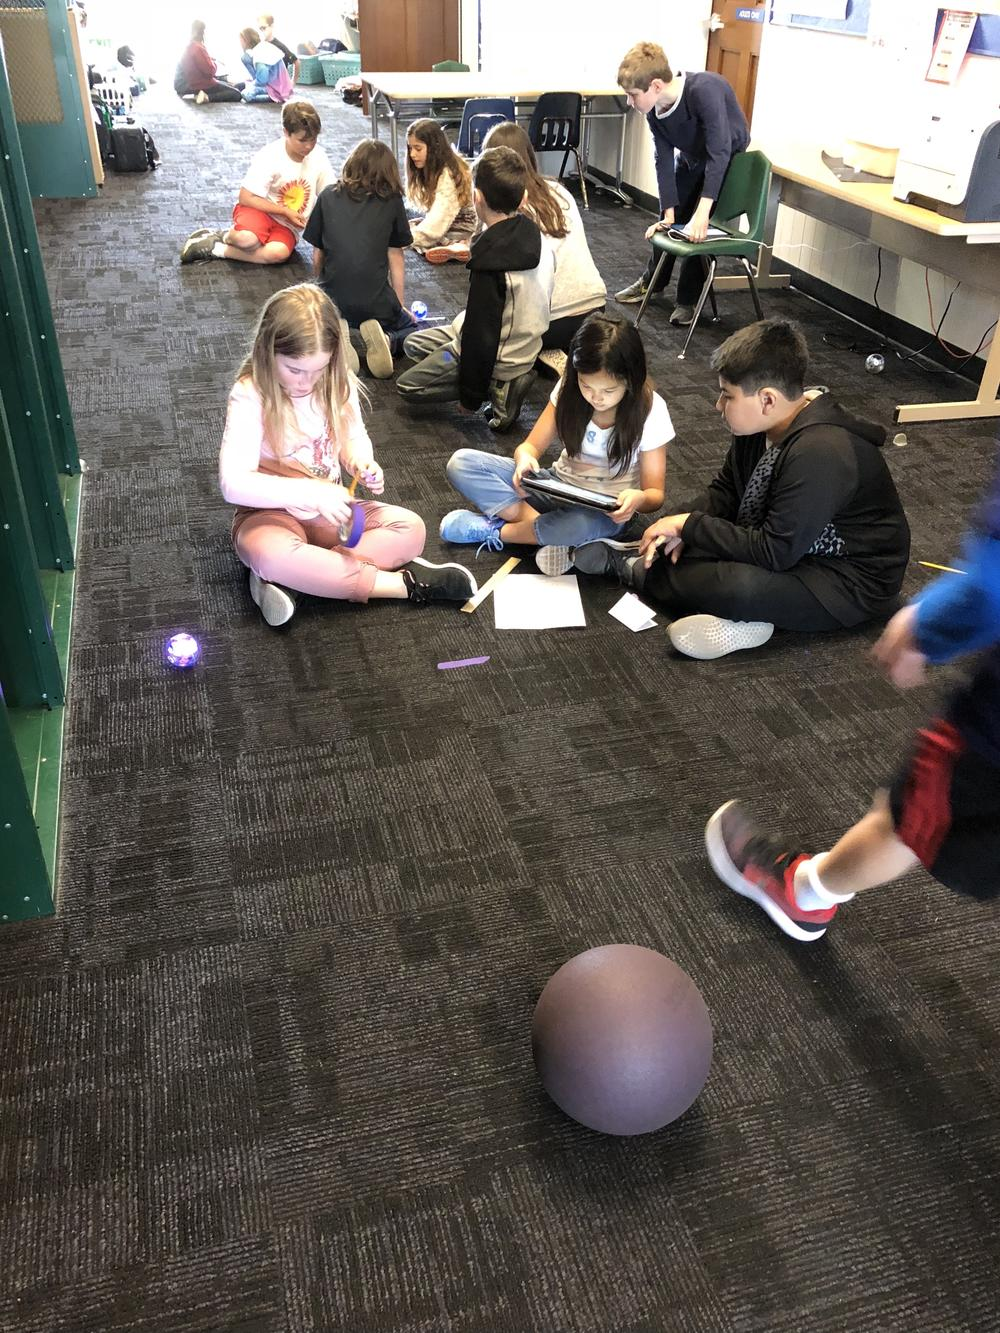 Active learning with Sphero Robots